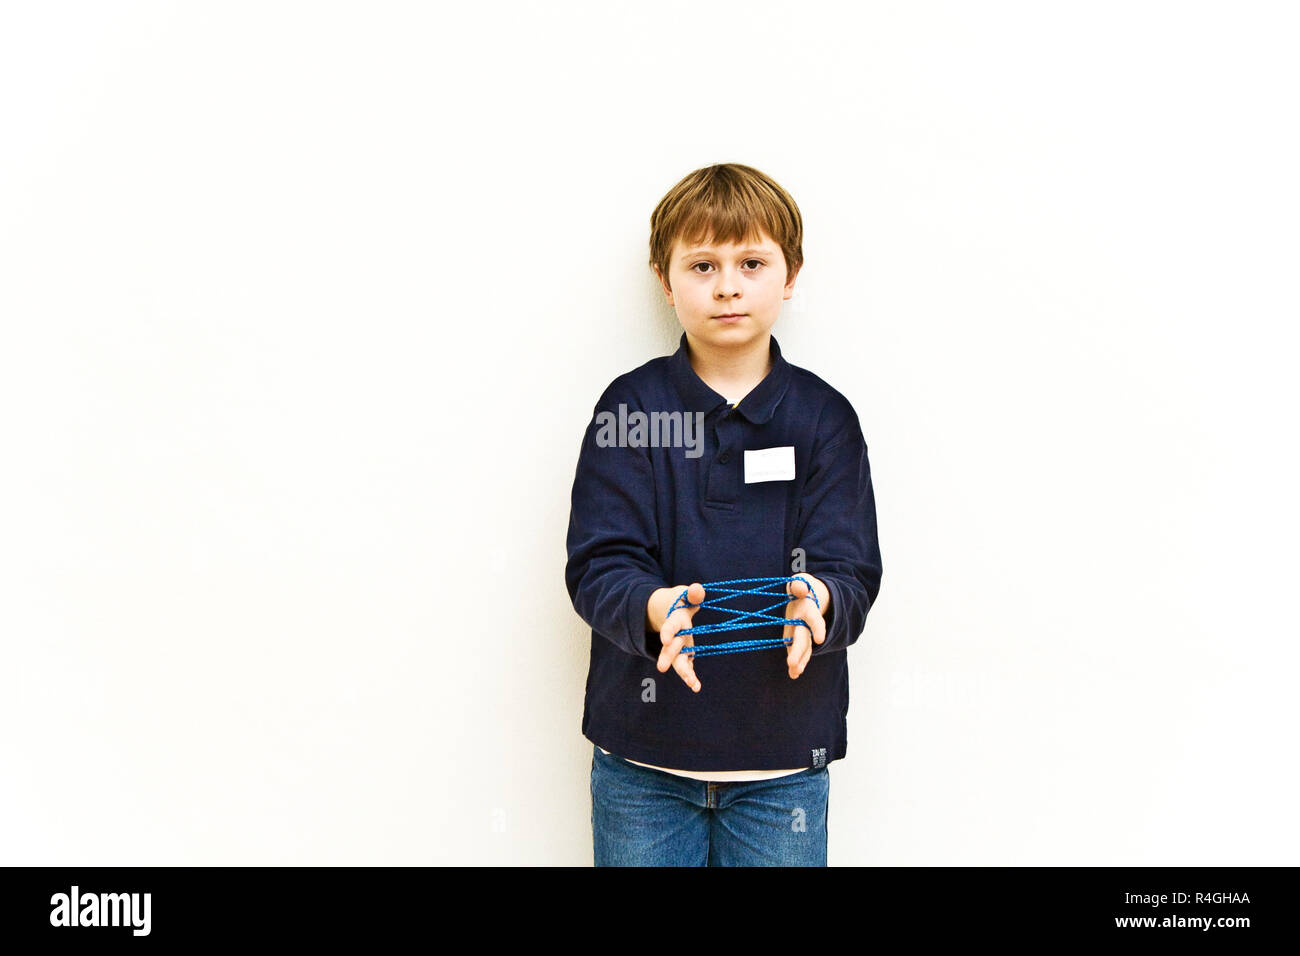 boy is playing a handgame with a band in a museum for modern Art, he enjoys it Stock Photo